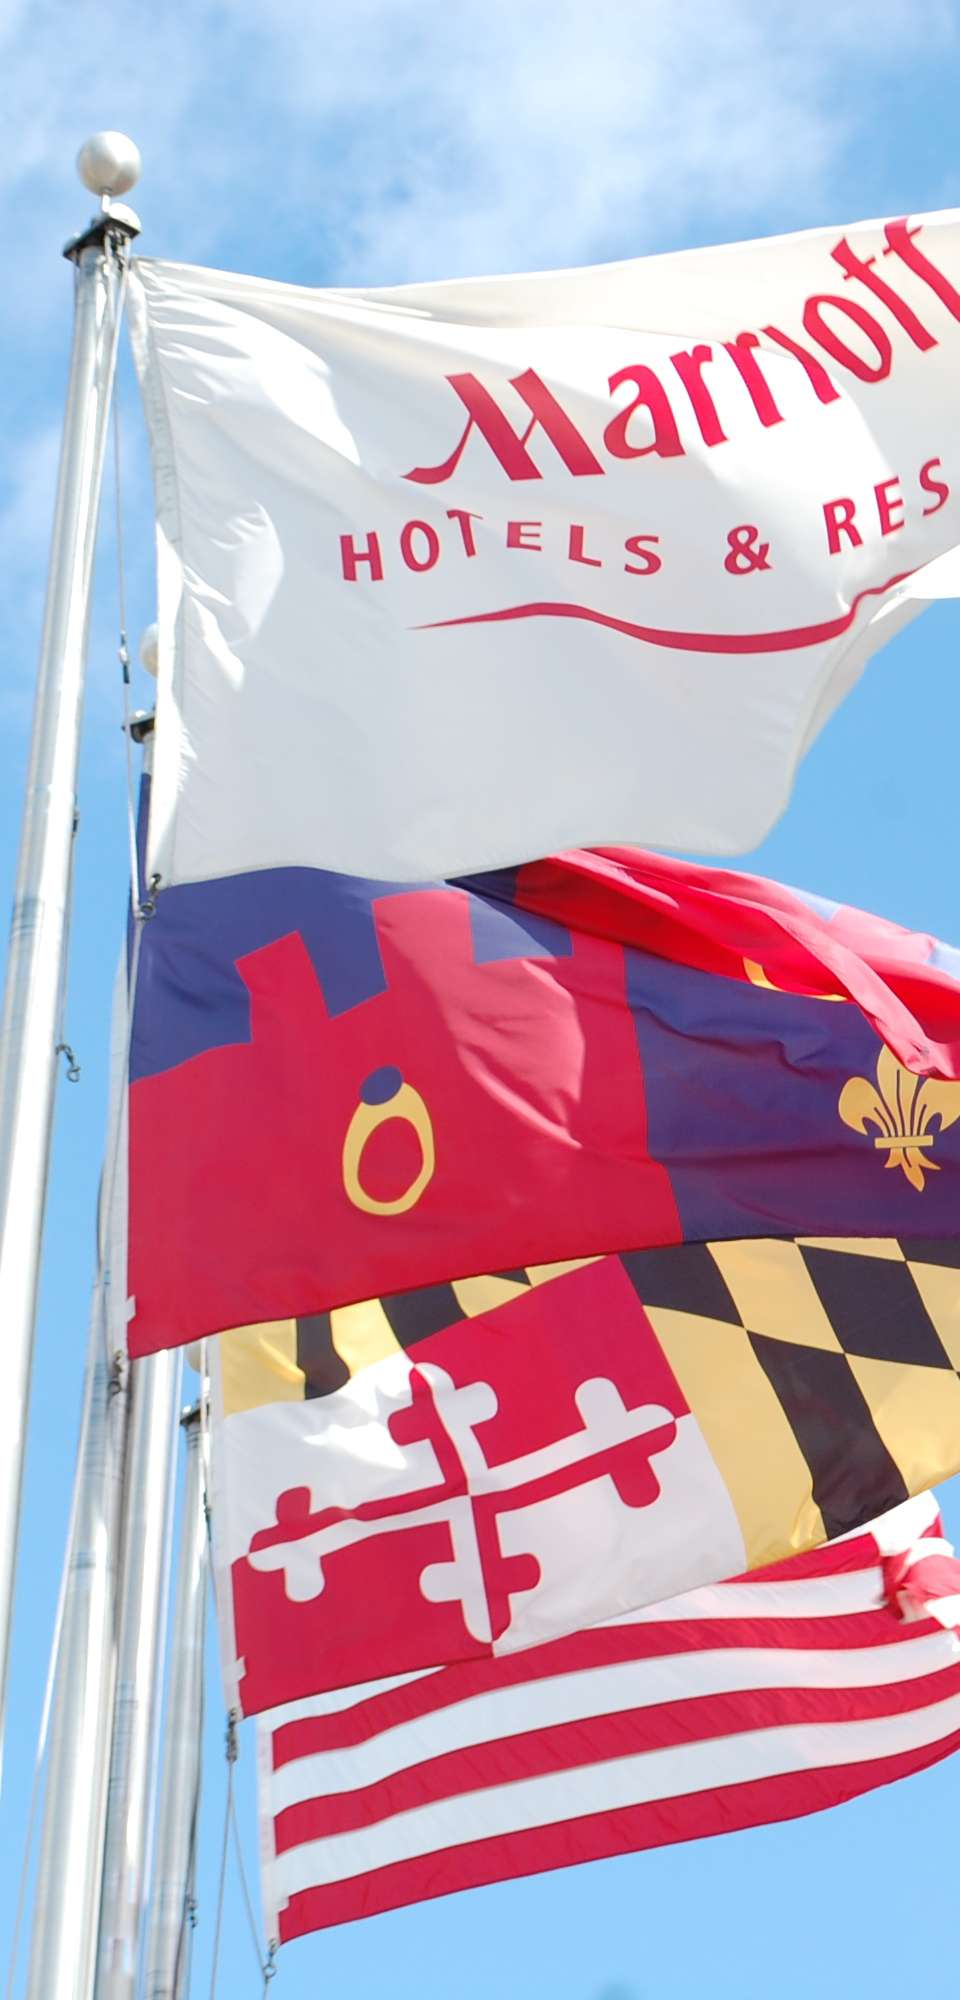 Marriott, Maryland State, and United States Flags flying against a blue sky